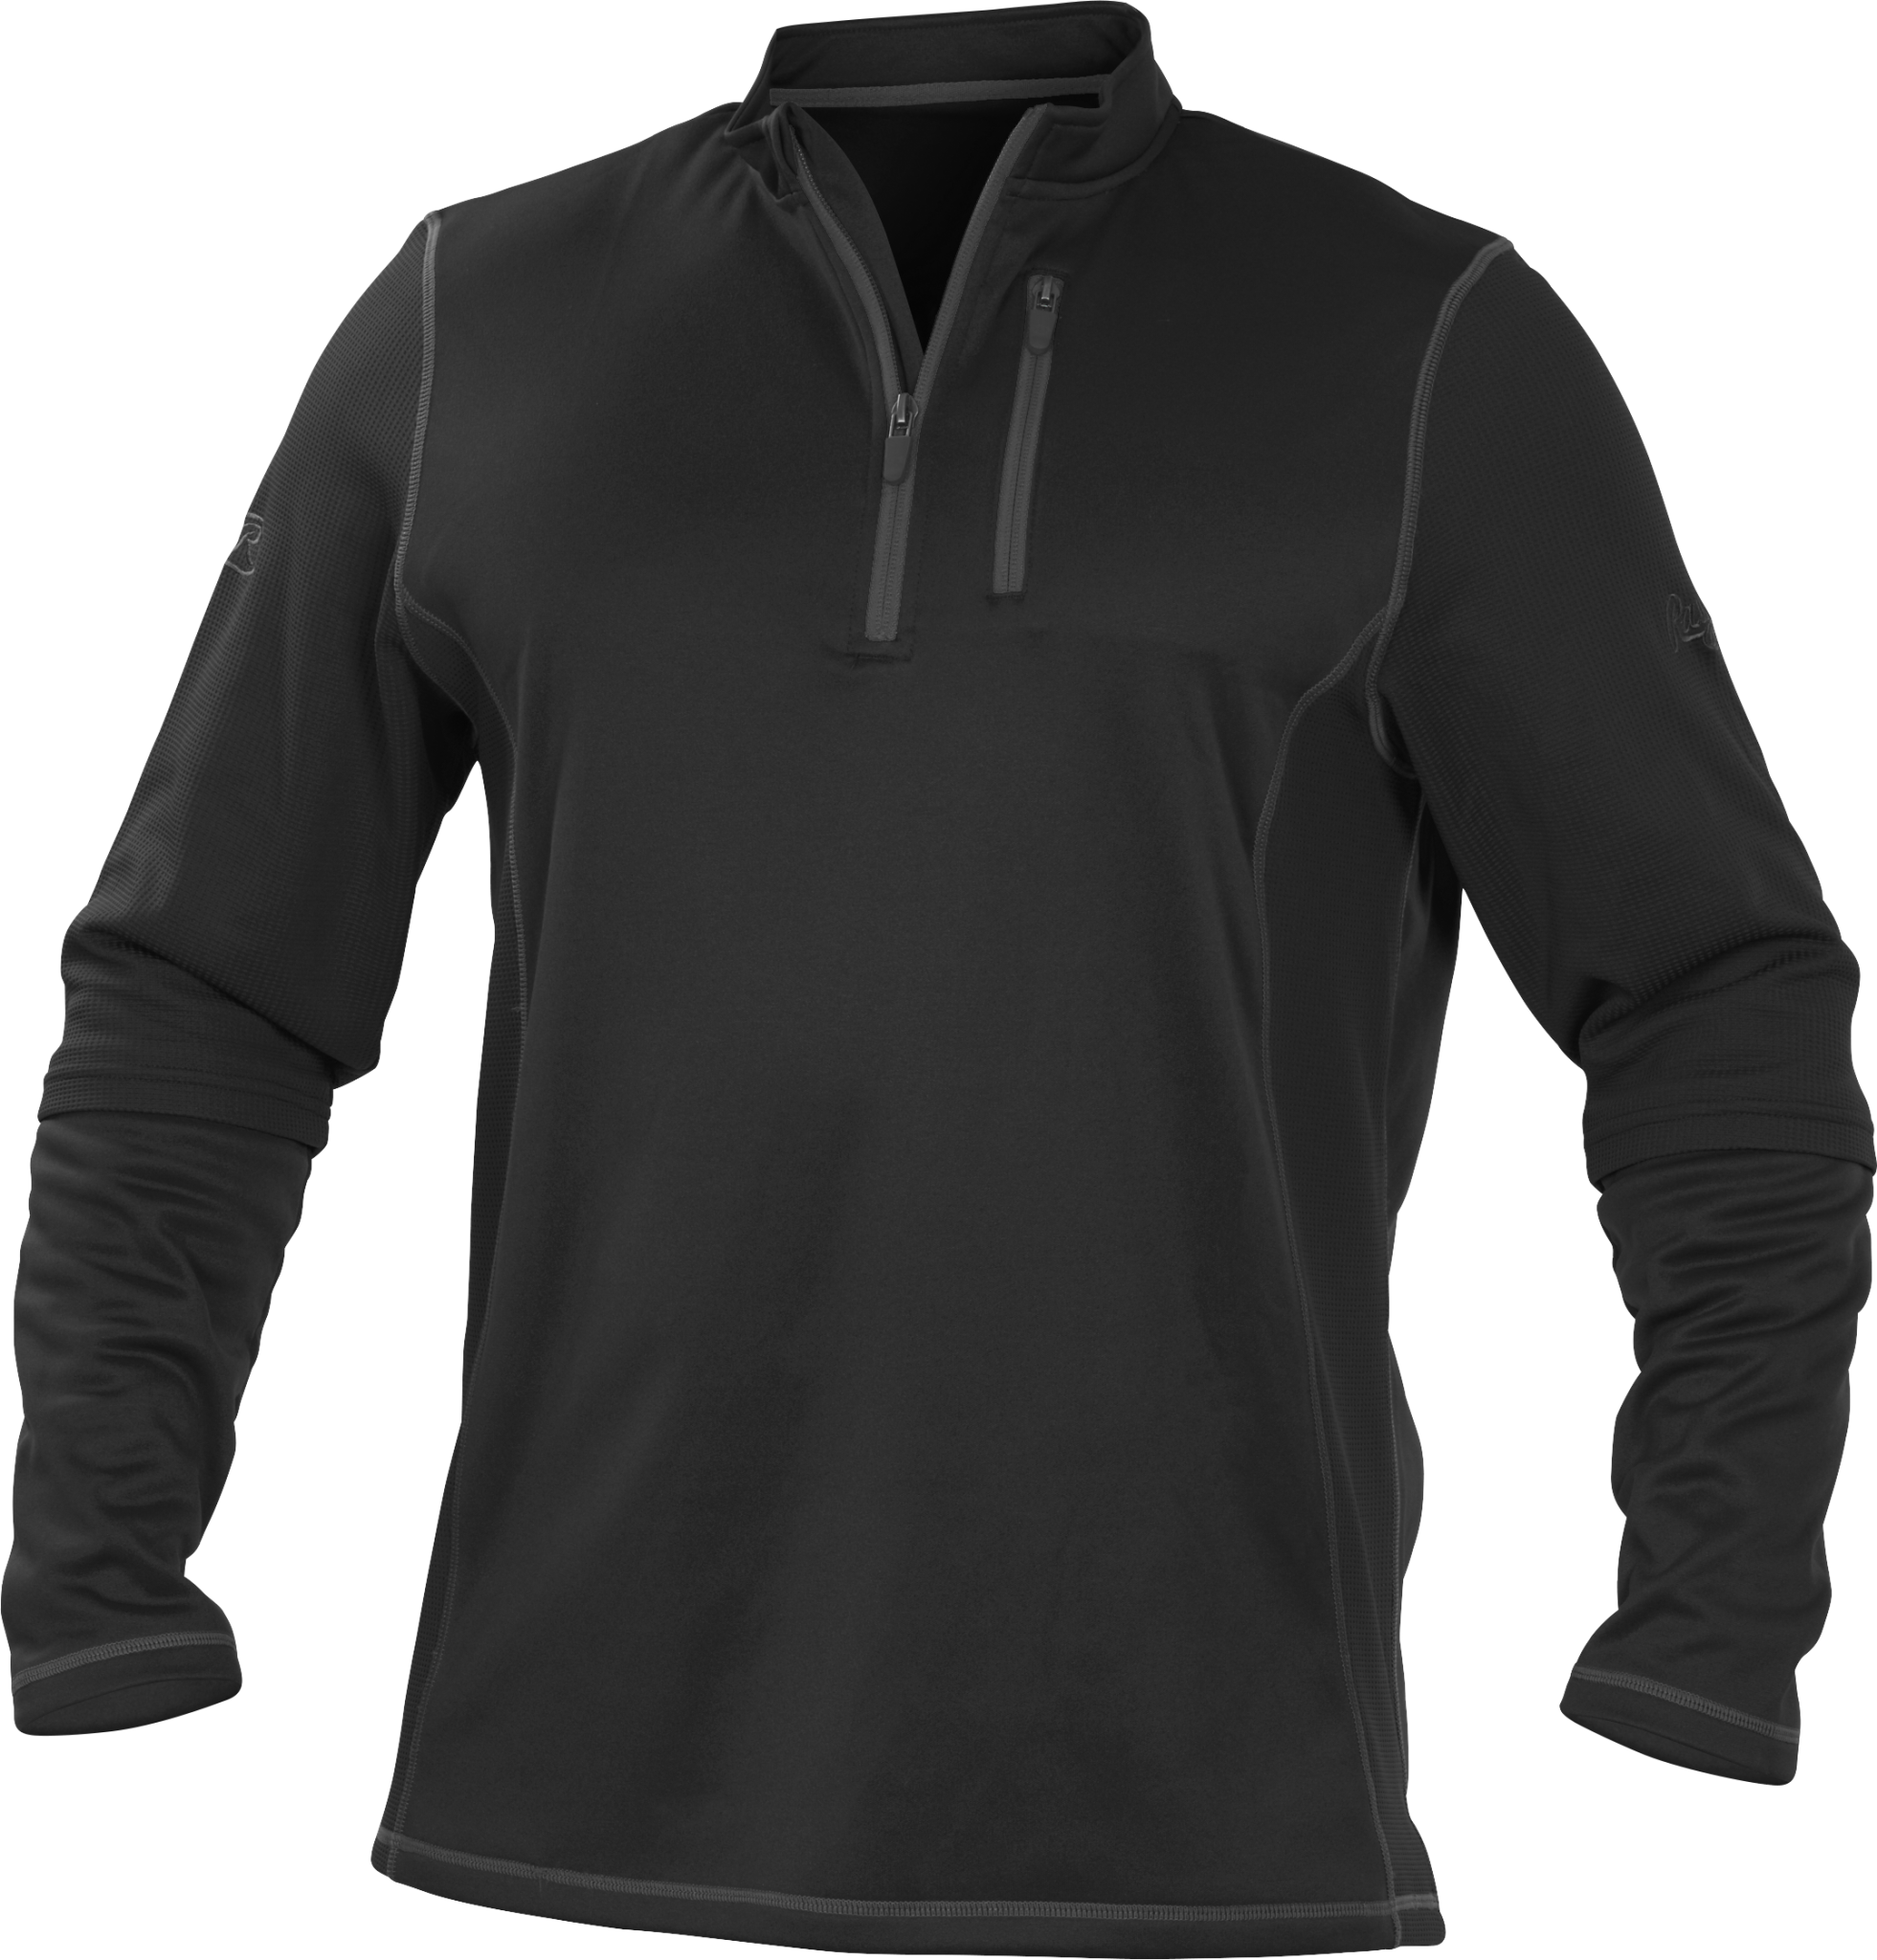 Rawlings TECH2 1/4 ZIP FLEECE